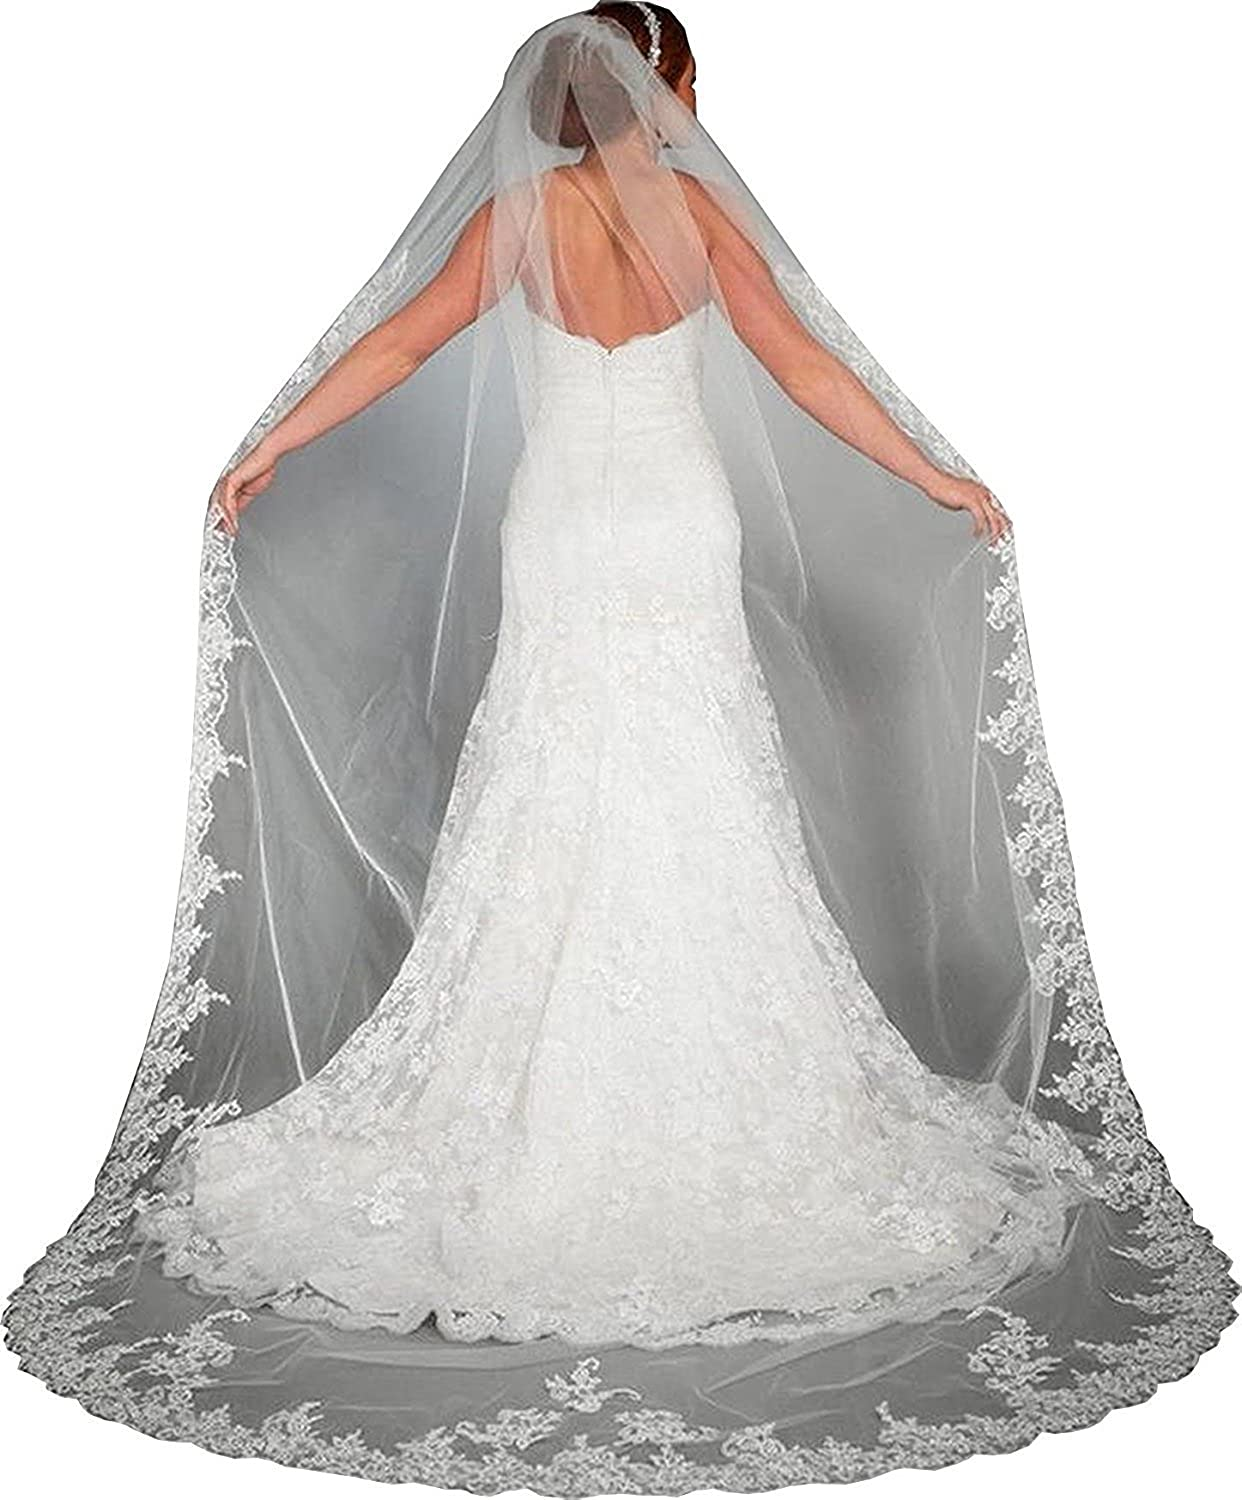 Cathedral Length Lace Edge Rhinestone Bridal Wedding Bridal Veil with Comb